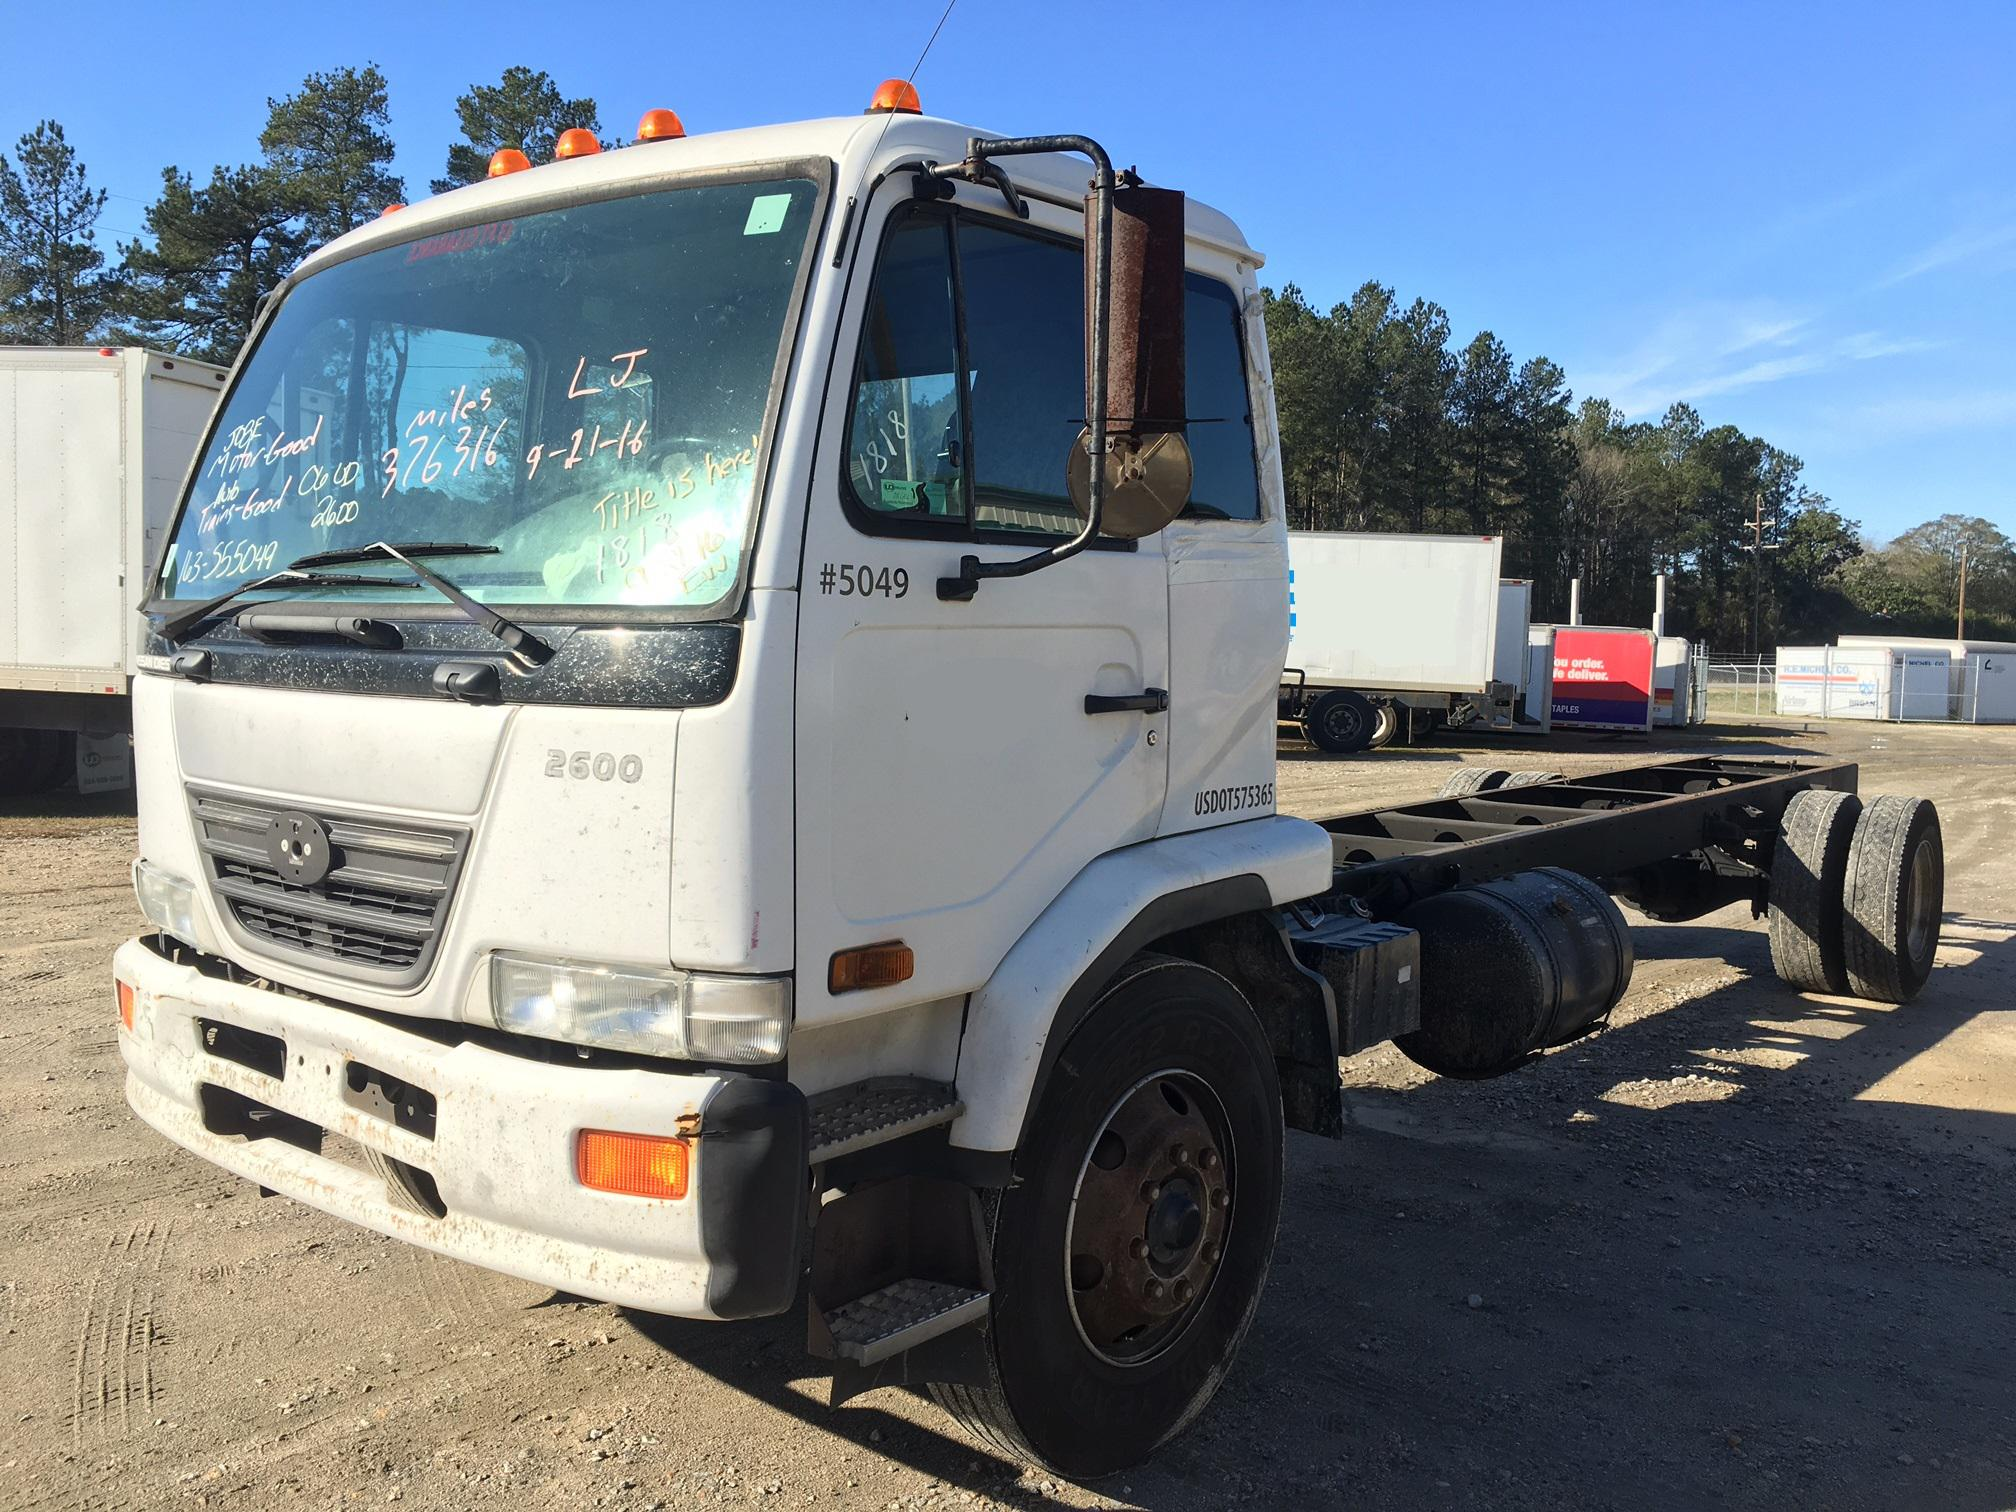 2007 nissan ud 2300dh isuzu npr nrr truck parts busbee. Black Bedroom Furniture Sets. Home Design Ideas